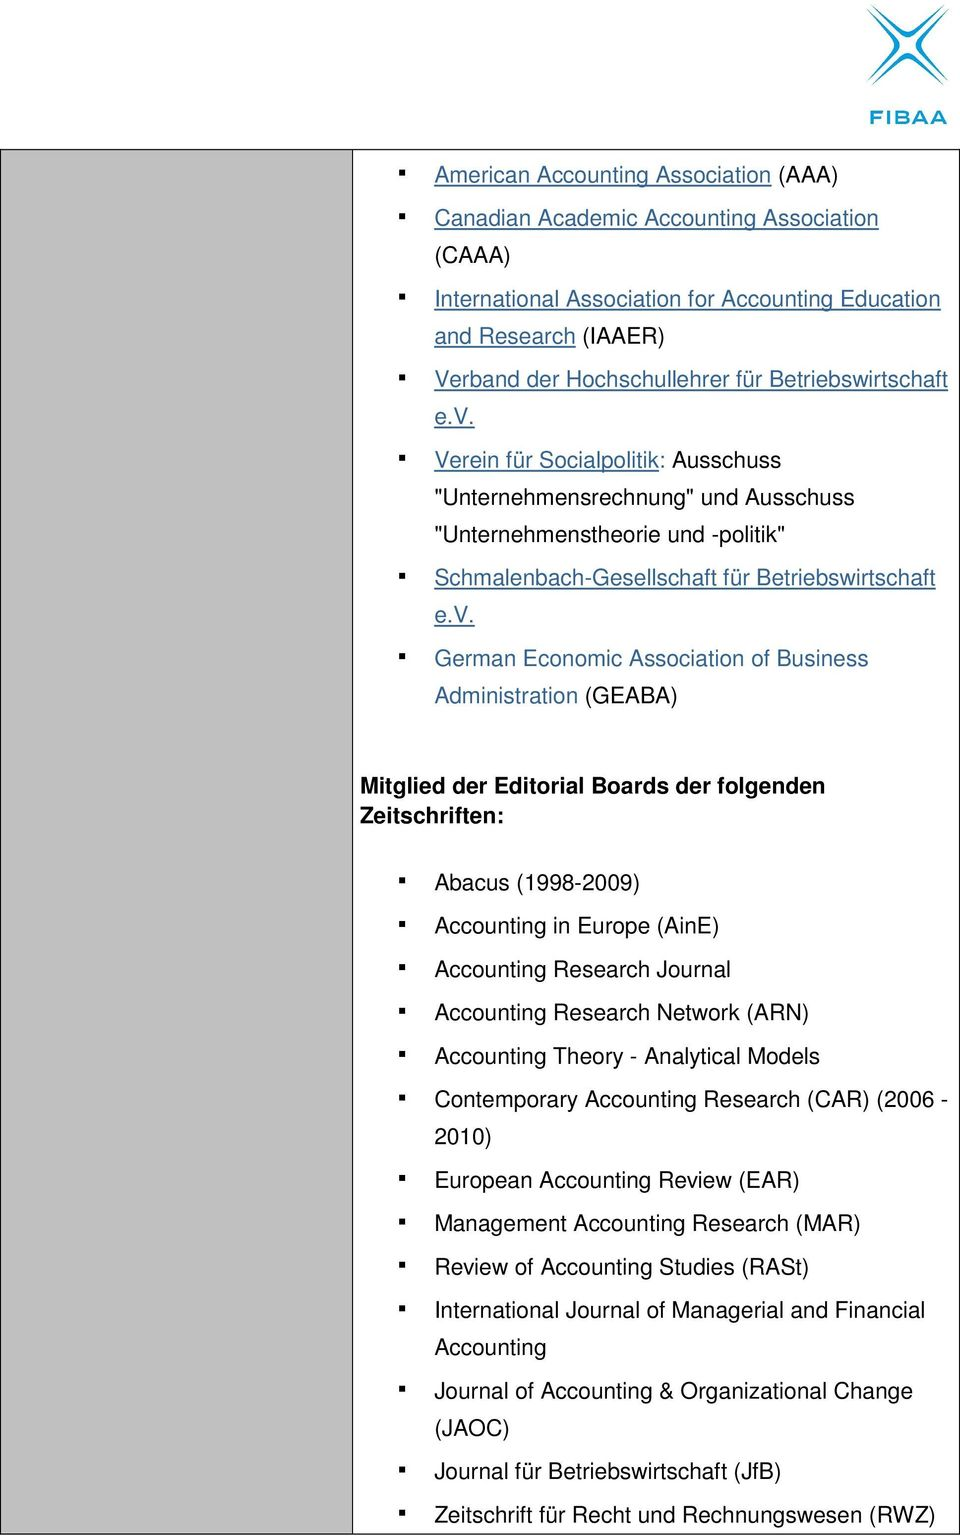 German Economic Association of Business Administration (GEABA) Mitglied der Editorial Boards der folgenden Zeitschriften: Abacus (1998-2009) Accounting in Europe (AinE) Accounting Research Journal